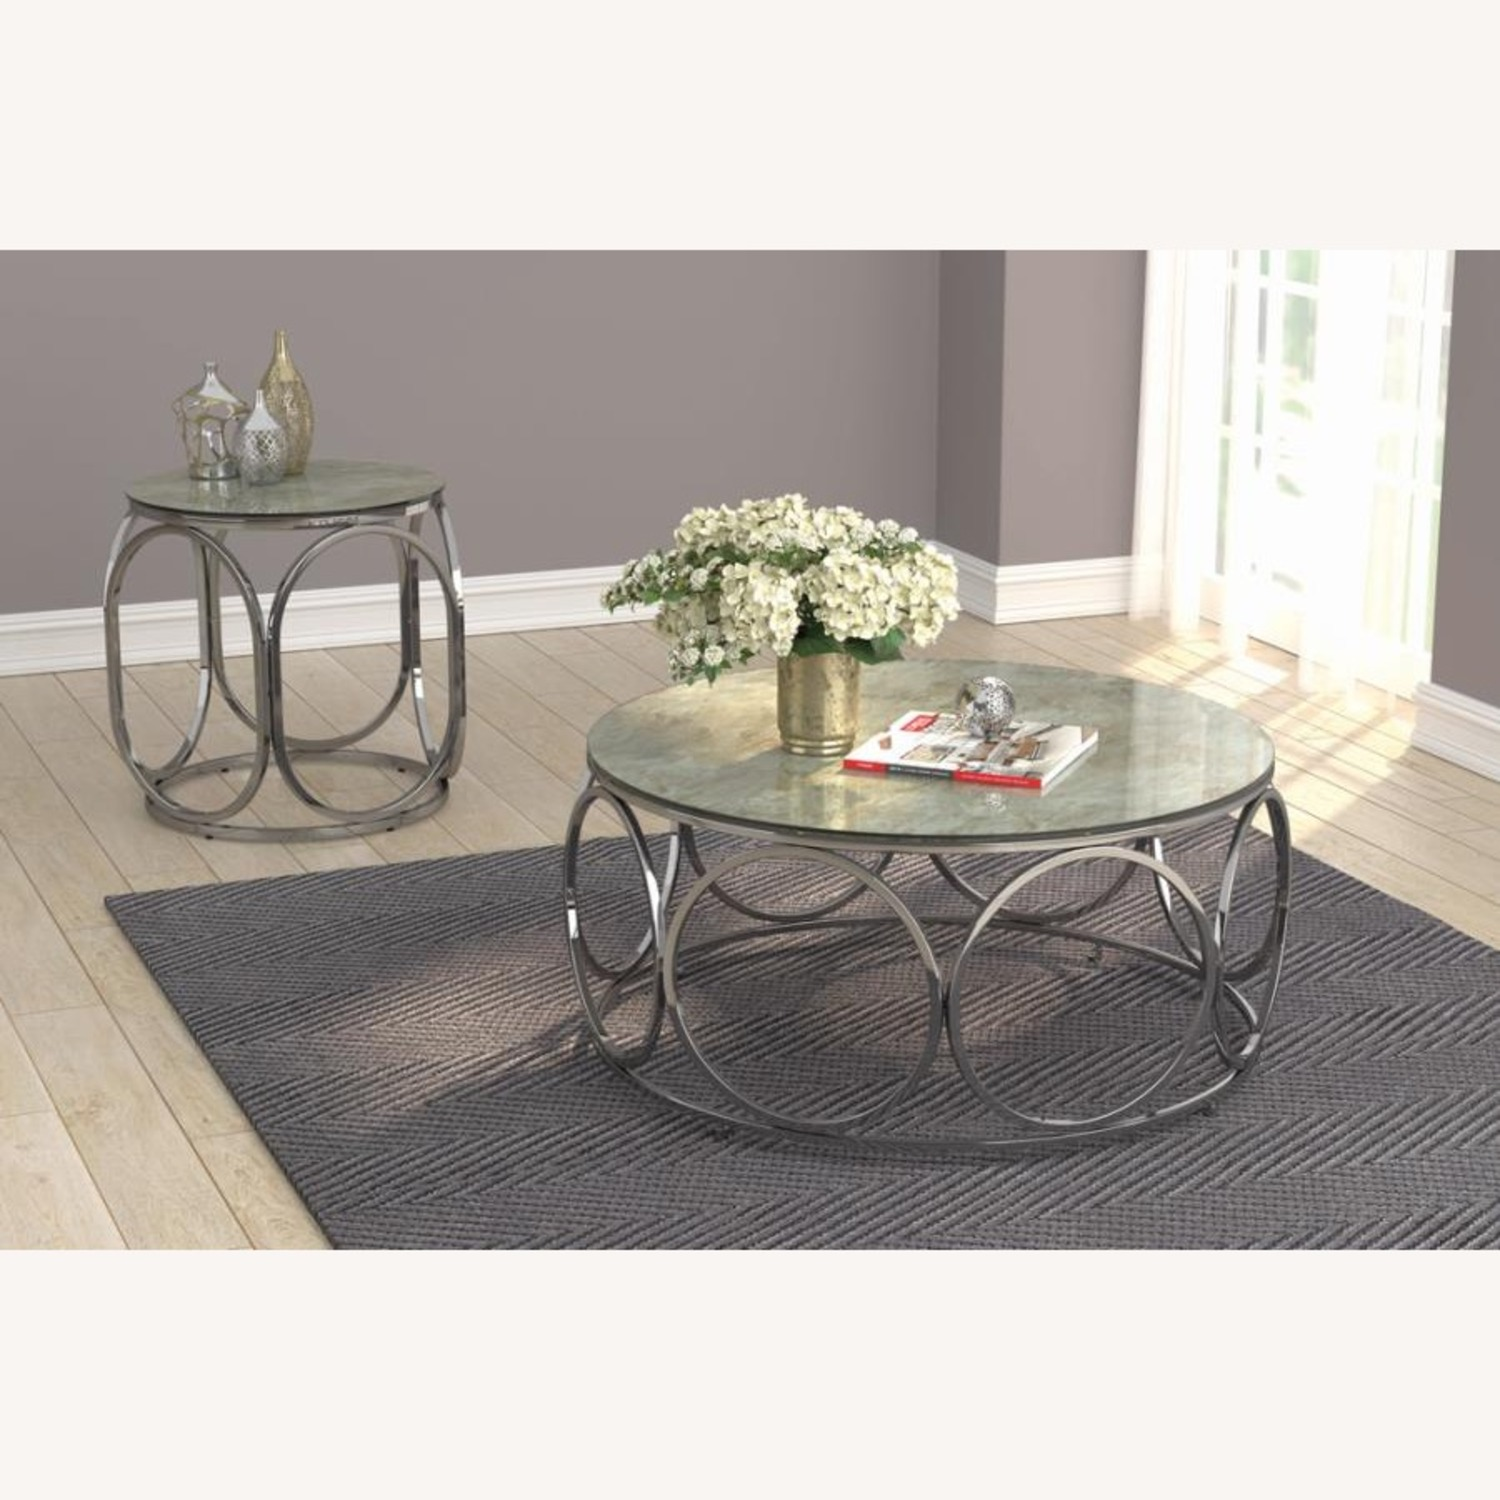 Circular Shapes End Table In Chrome Metal Finish - image-4